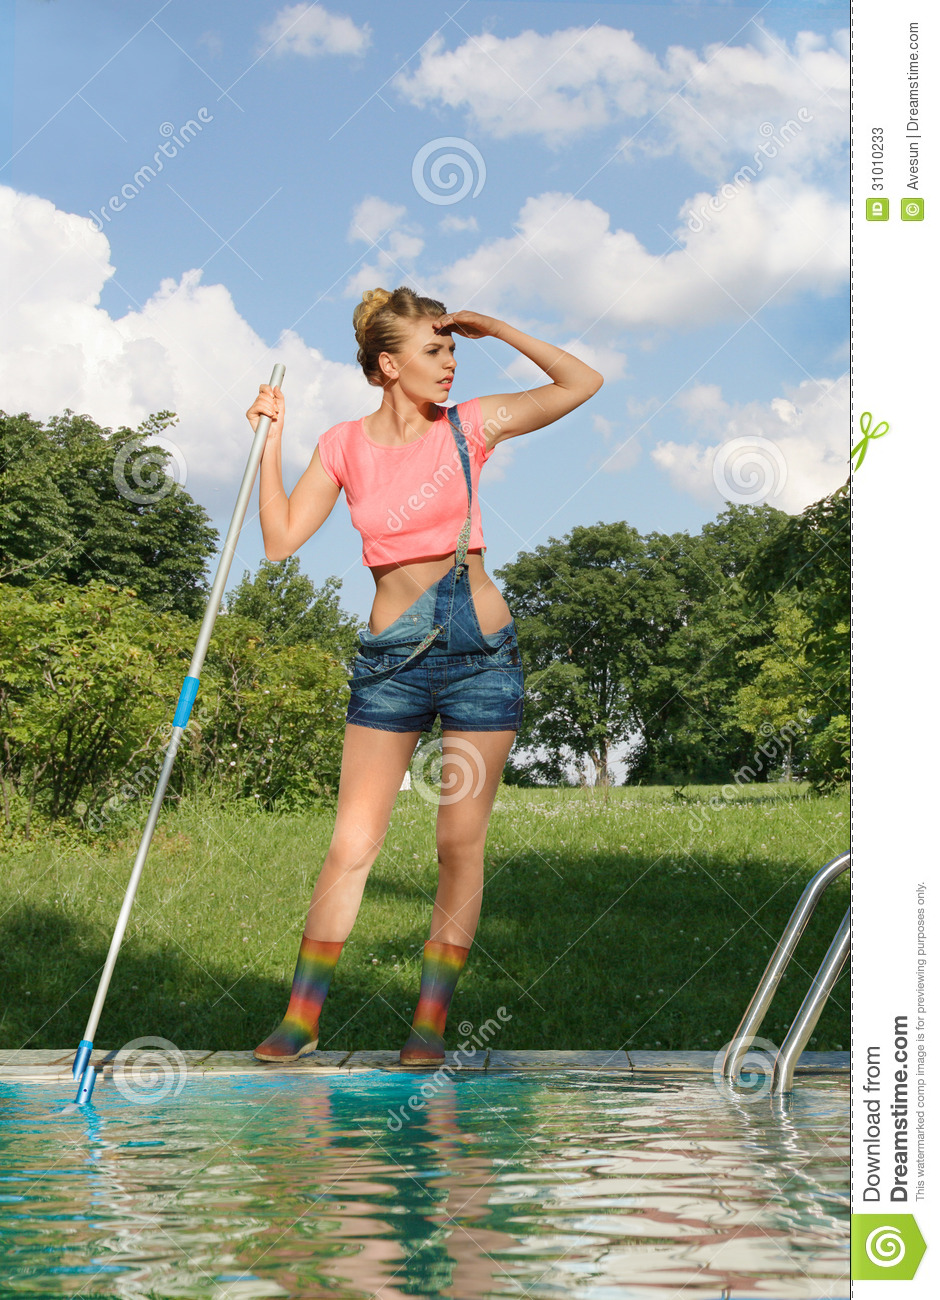 Swimming Pool Cleaner Work Stock Image